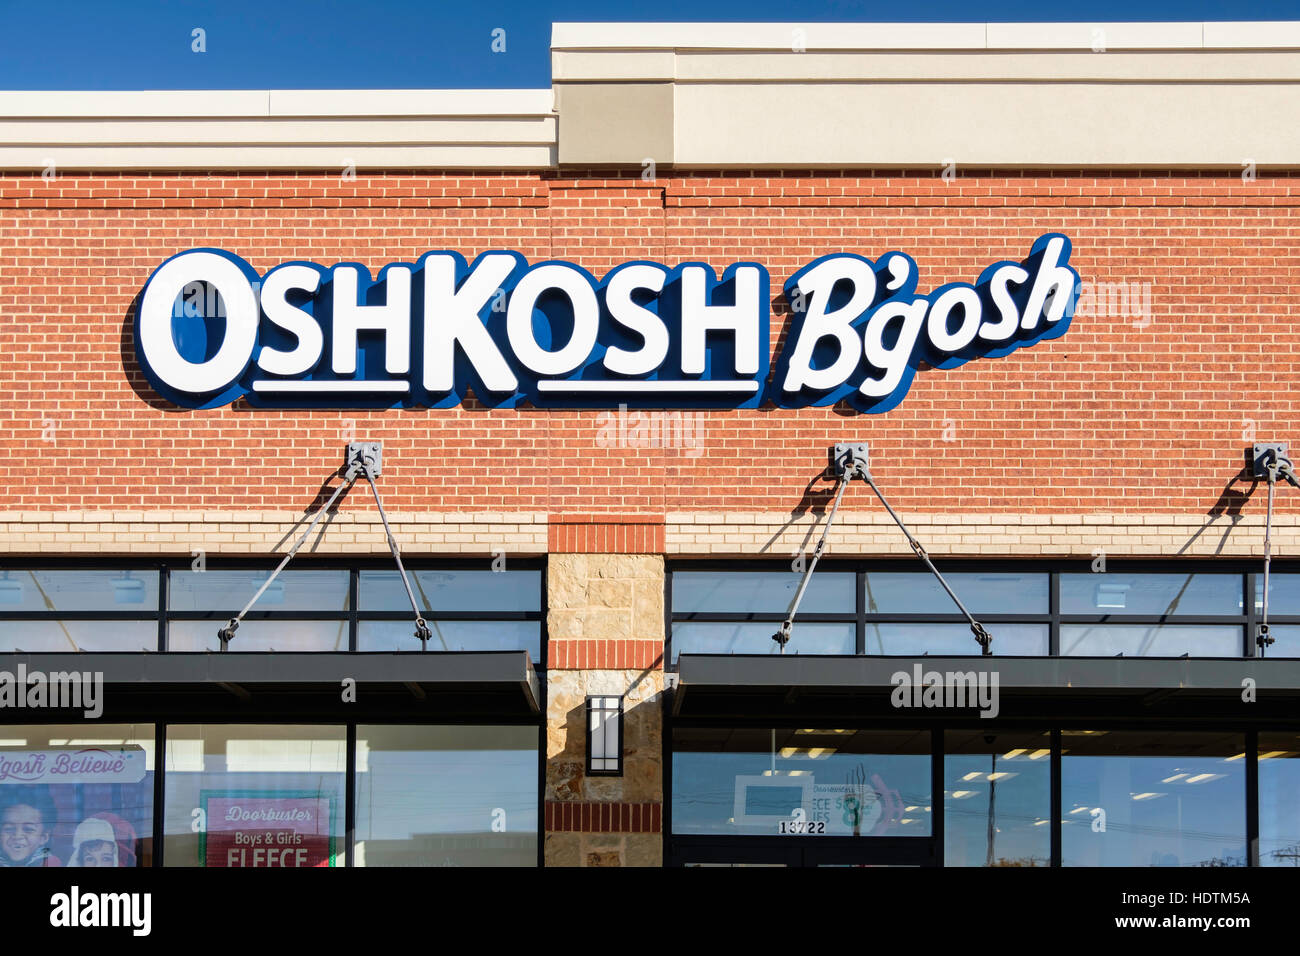 The exterior of an OshKosh B'gosh children's clothing store located Memorial Rd., Oklahoma City, Oklahoma, - Stock Image